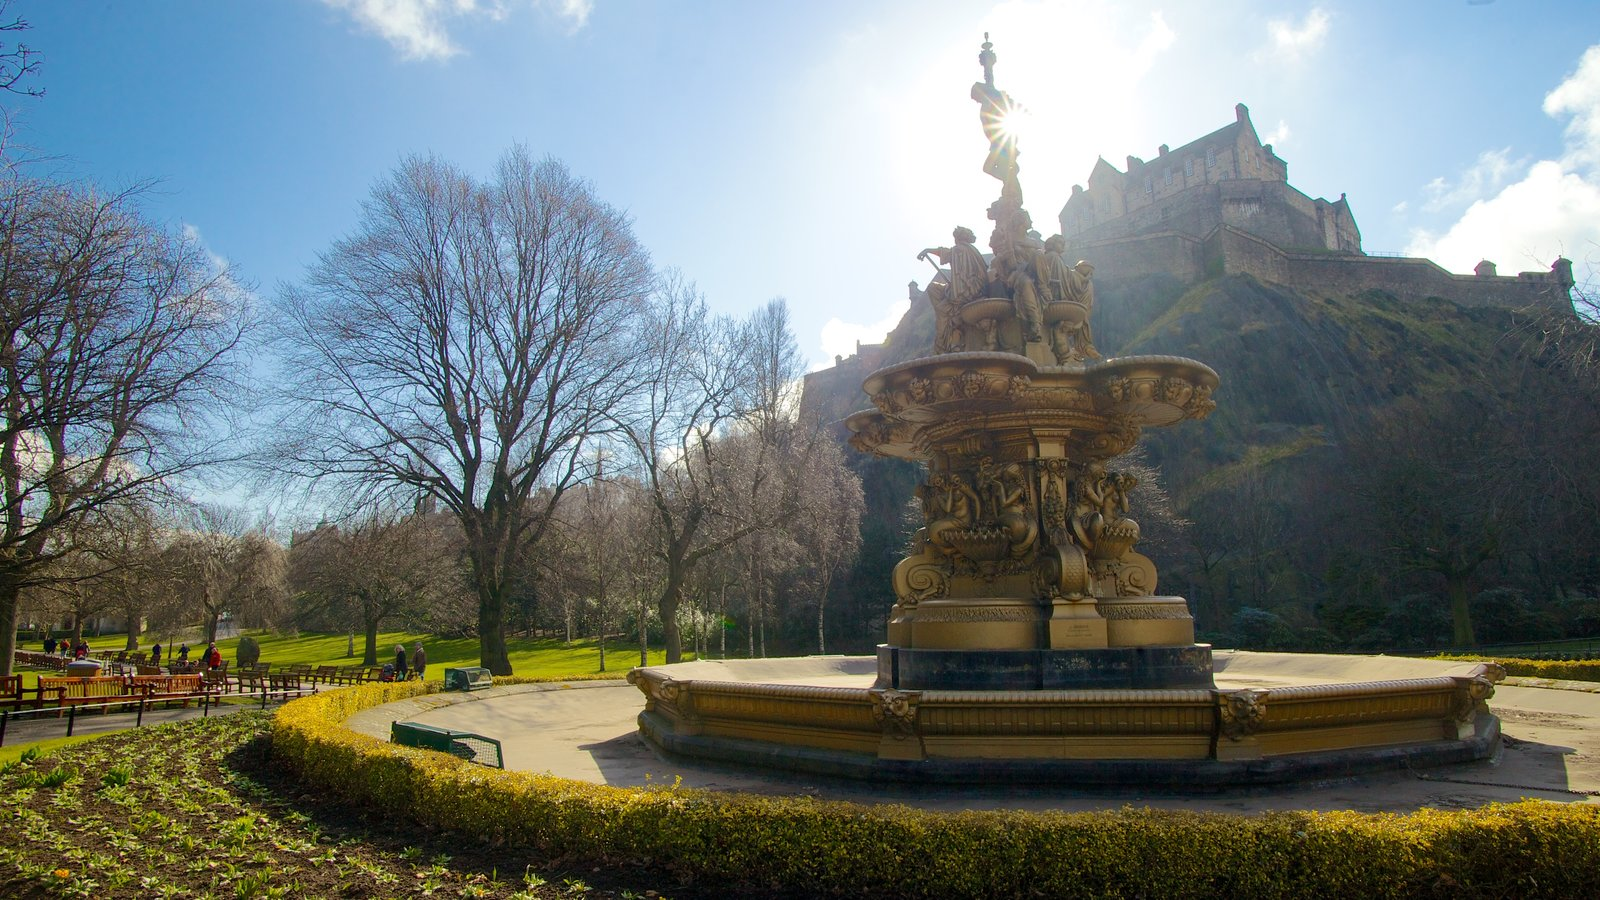 Princes Street Gardens showing a fountain, a statue or sculpture and a park